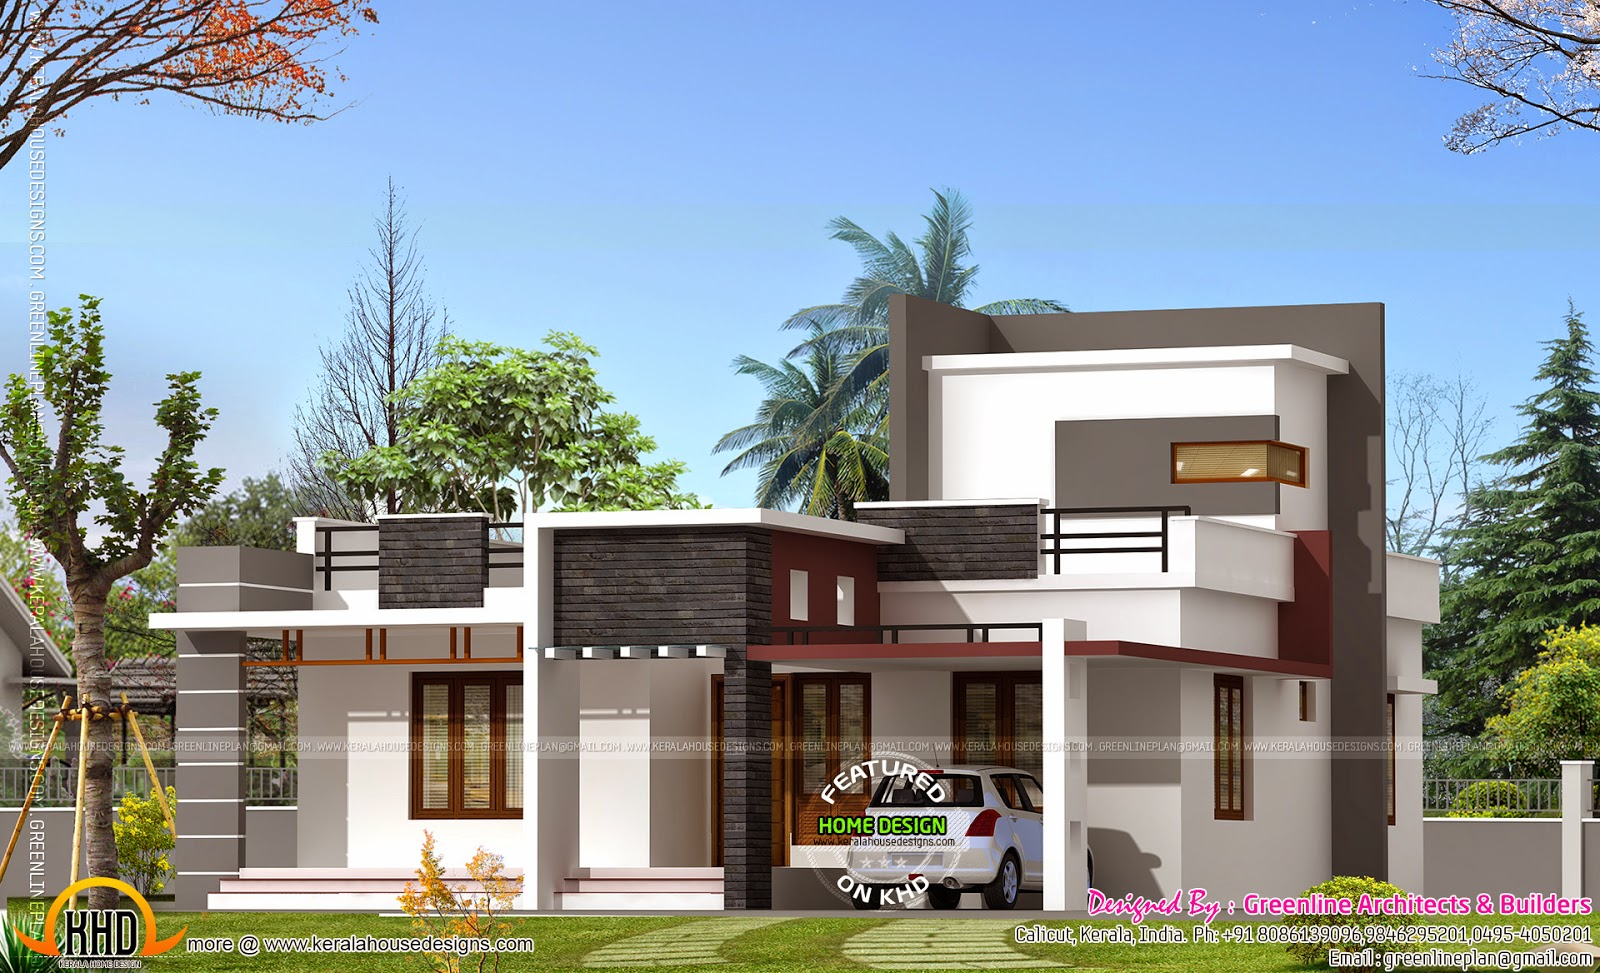 square feet house Kerala home design and floor plans